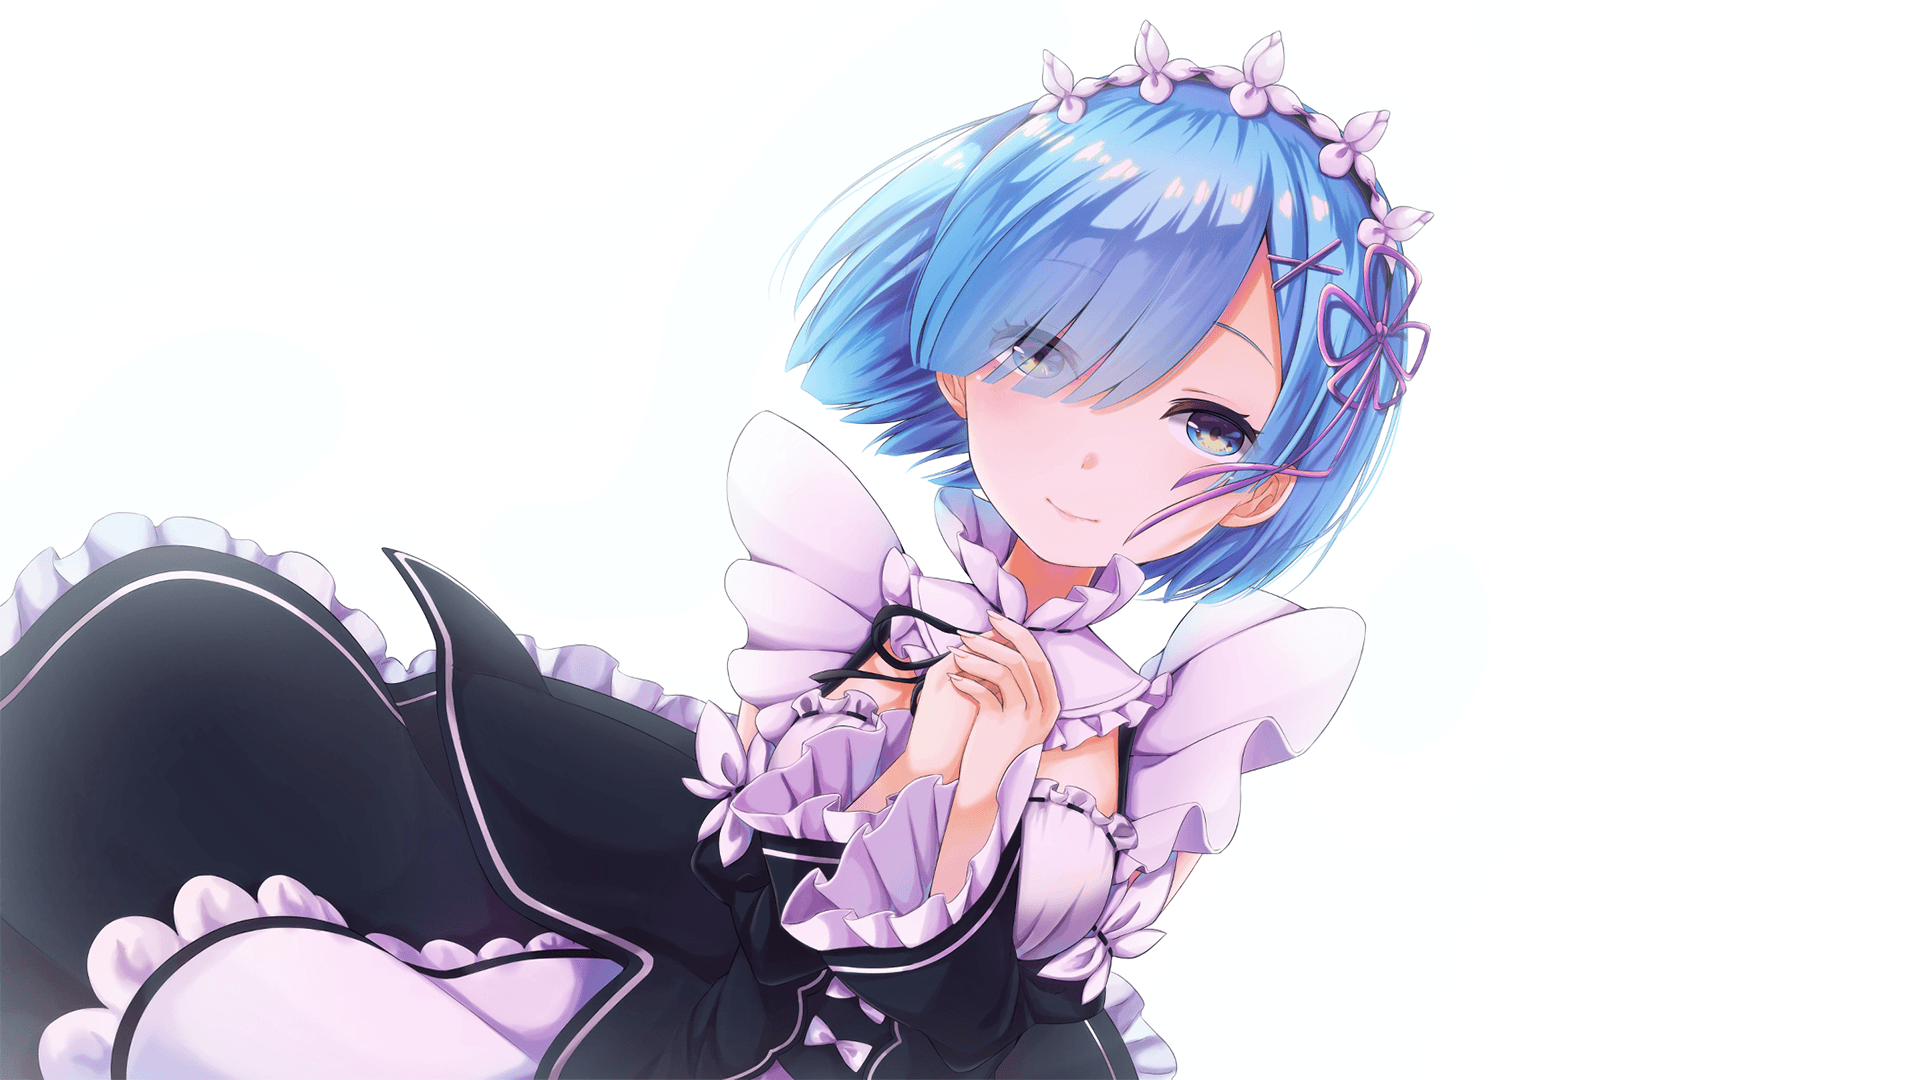 Re:Zero: When does Rem wake up from her death-like sleep